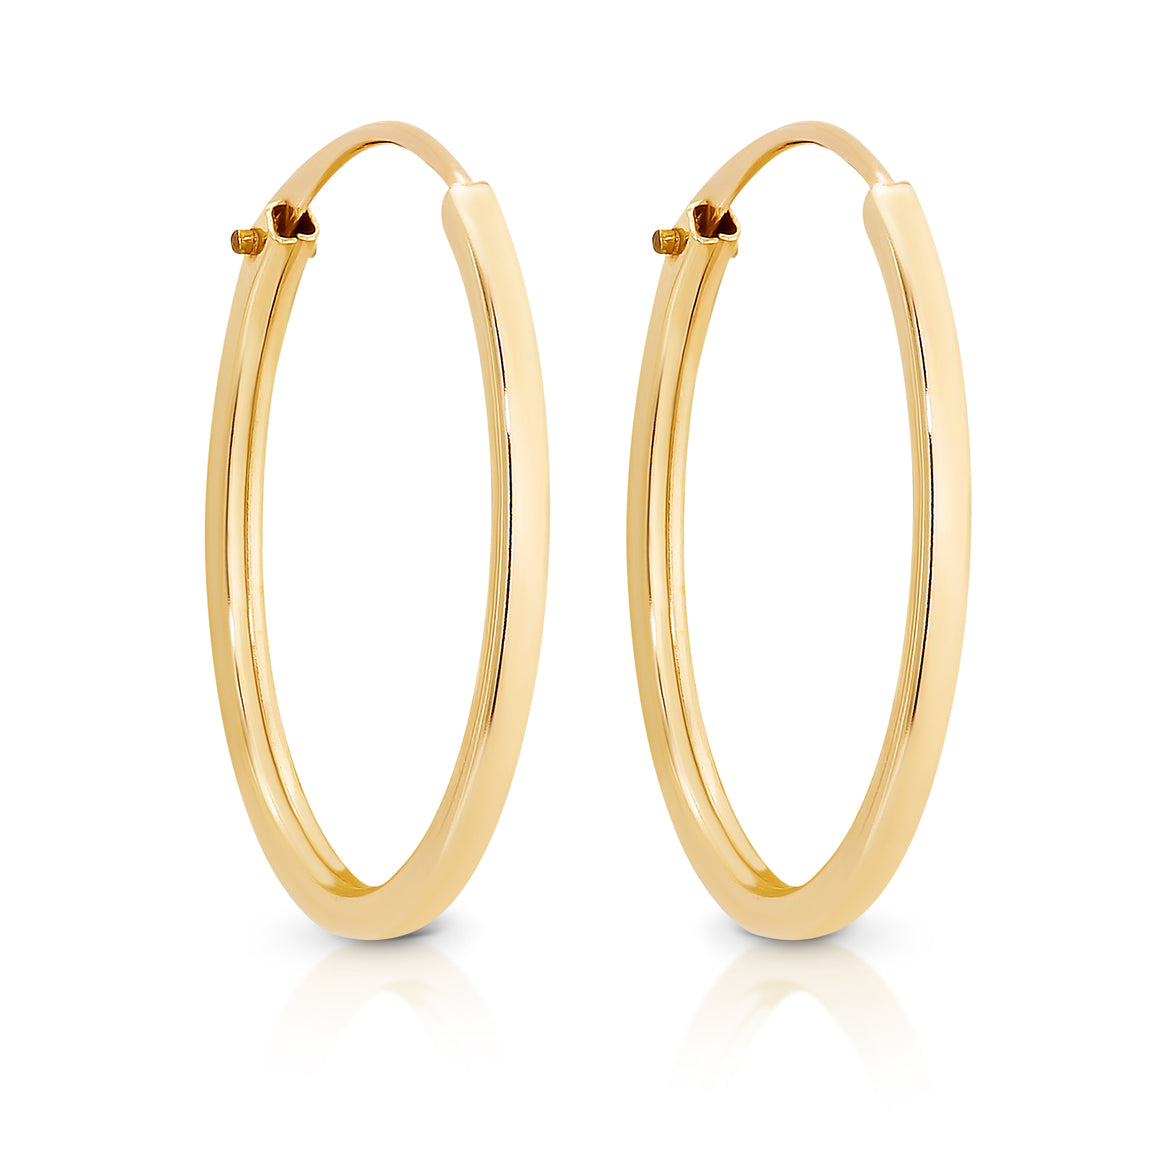 9ct Gold 'Camden' hoop earrings - Gemma Stone  ABN:51 621 127 866